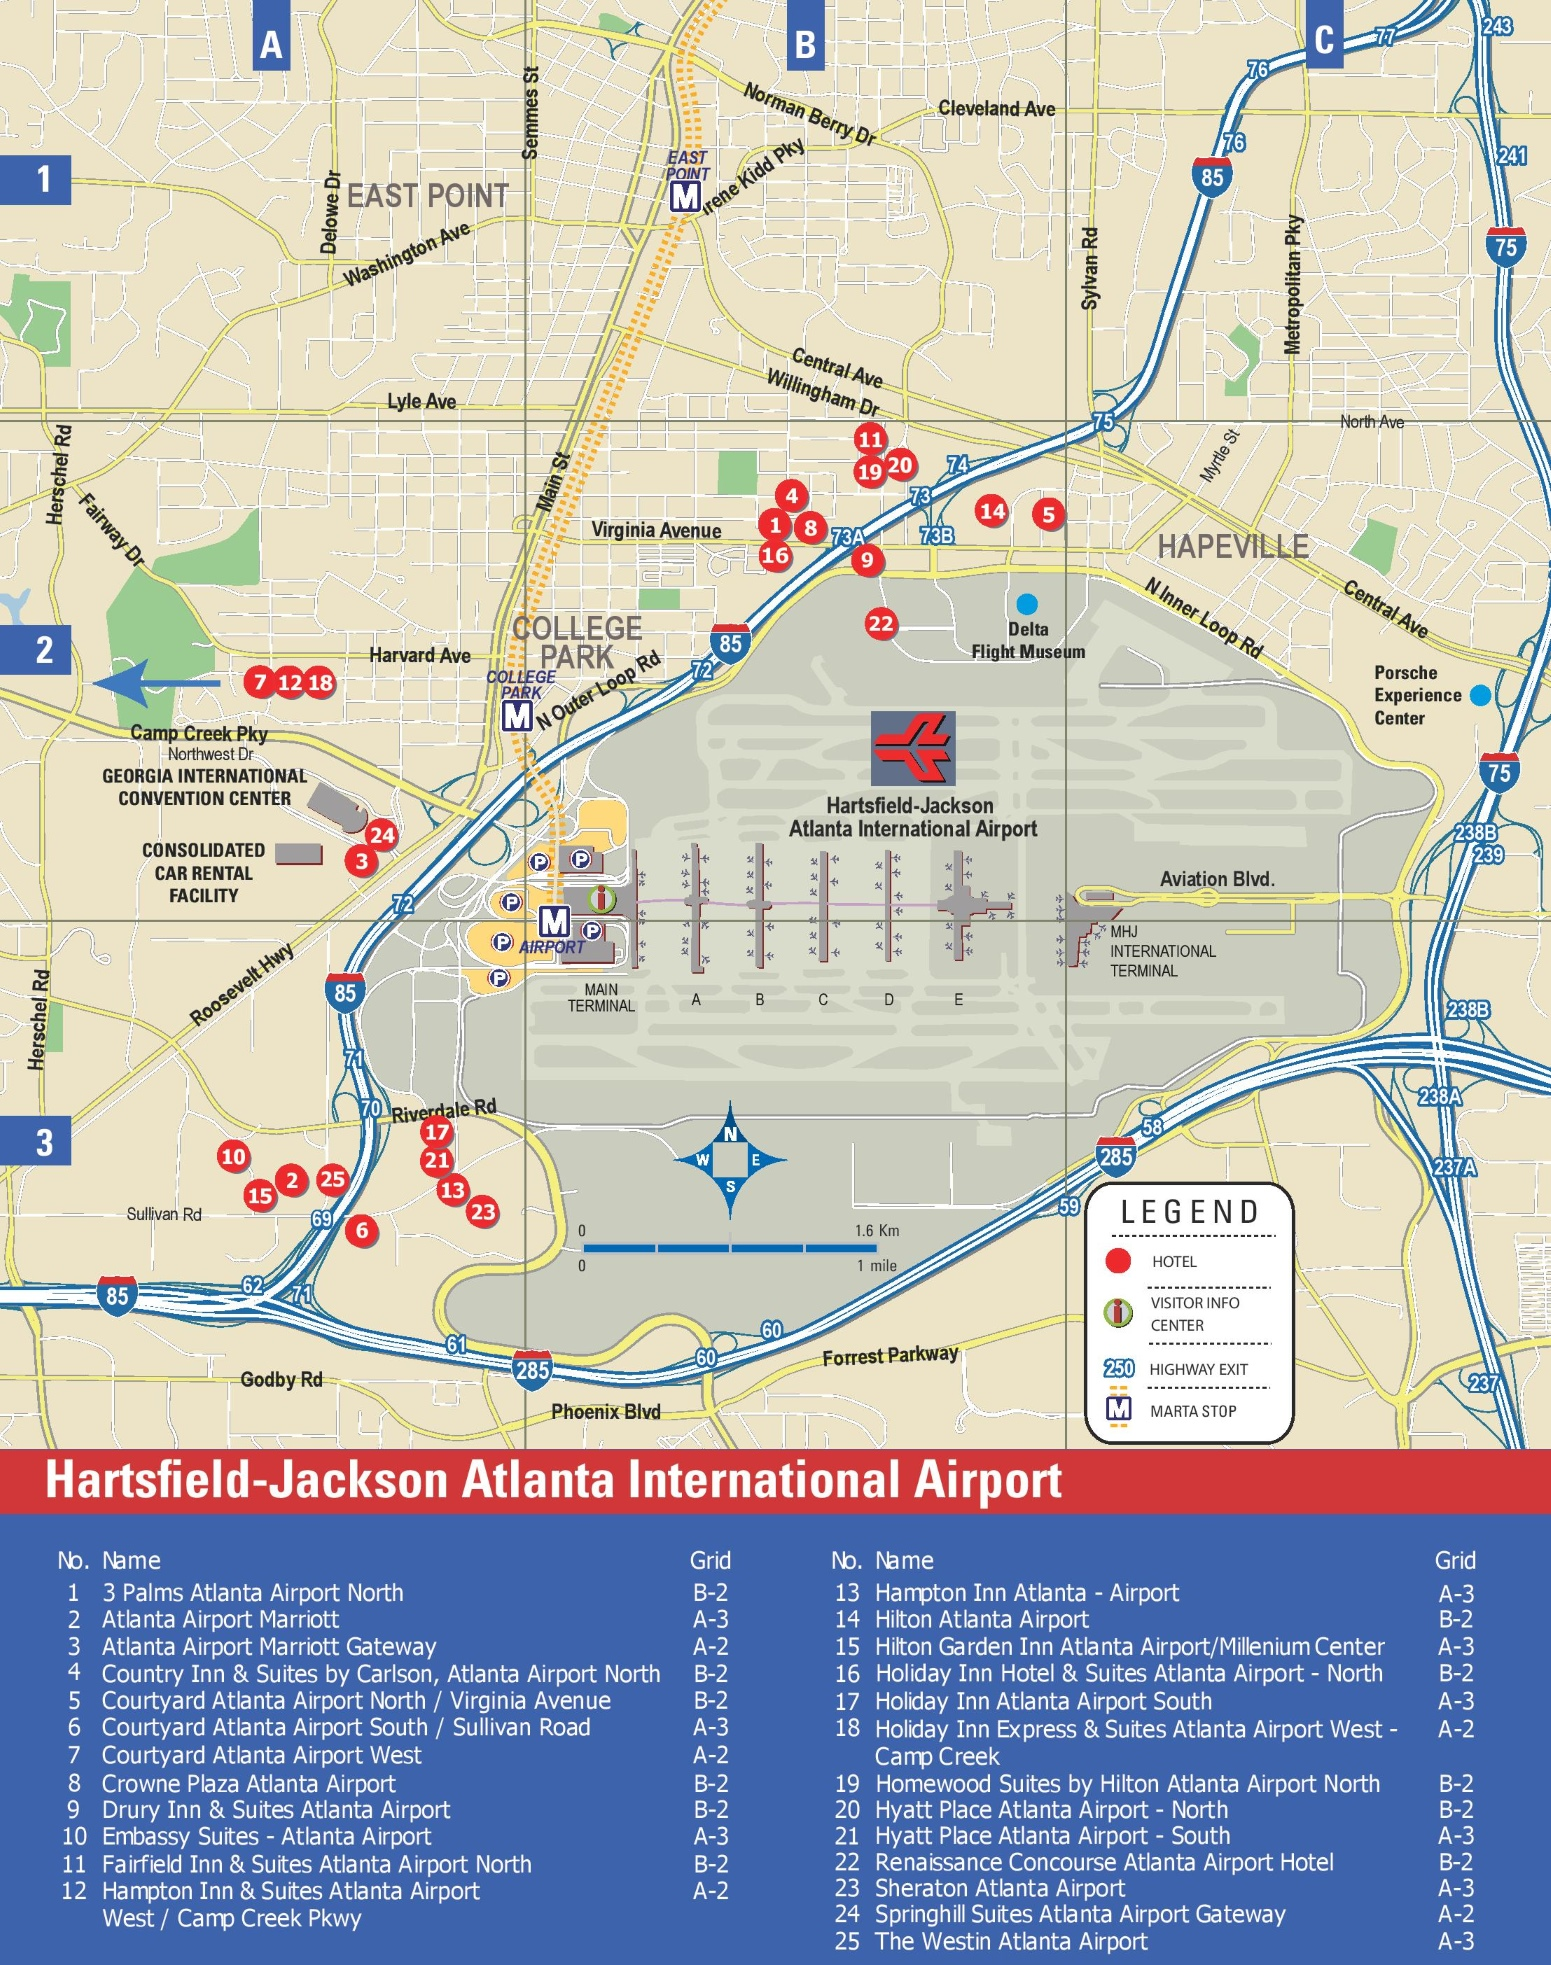 HartsfieldJackson Atlanta International Airport